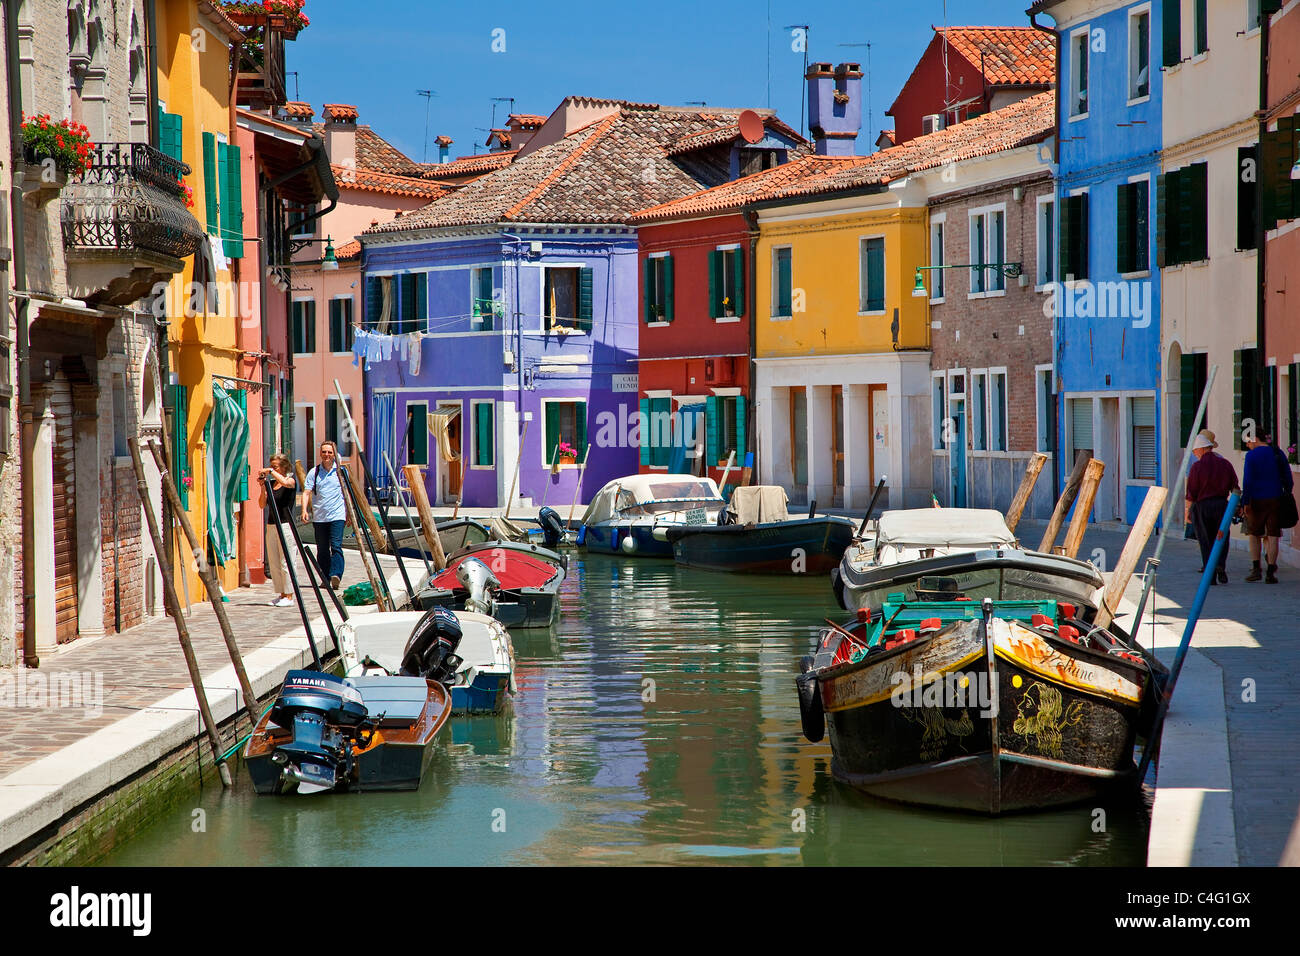 Venice, Burano, Colorful Boats and Homes Lining Canal - Stock Image